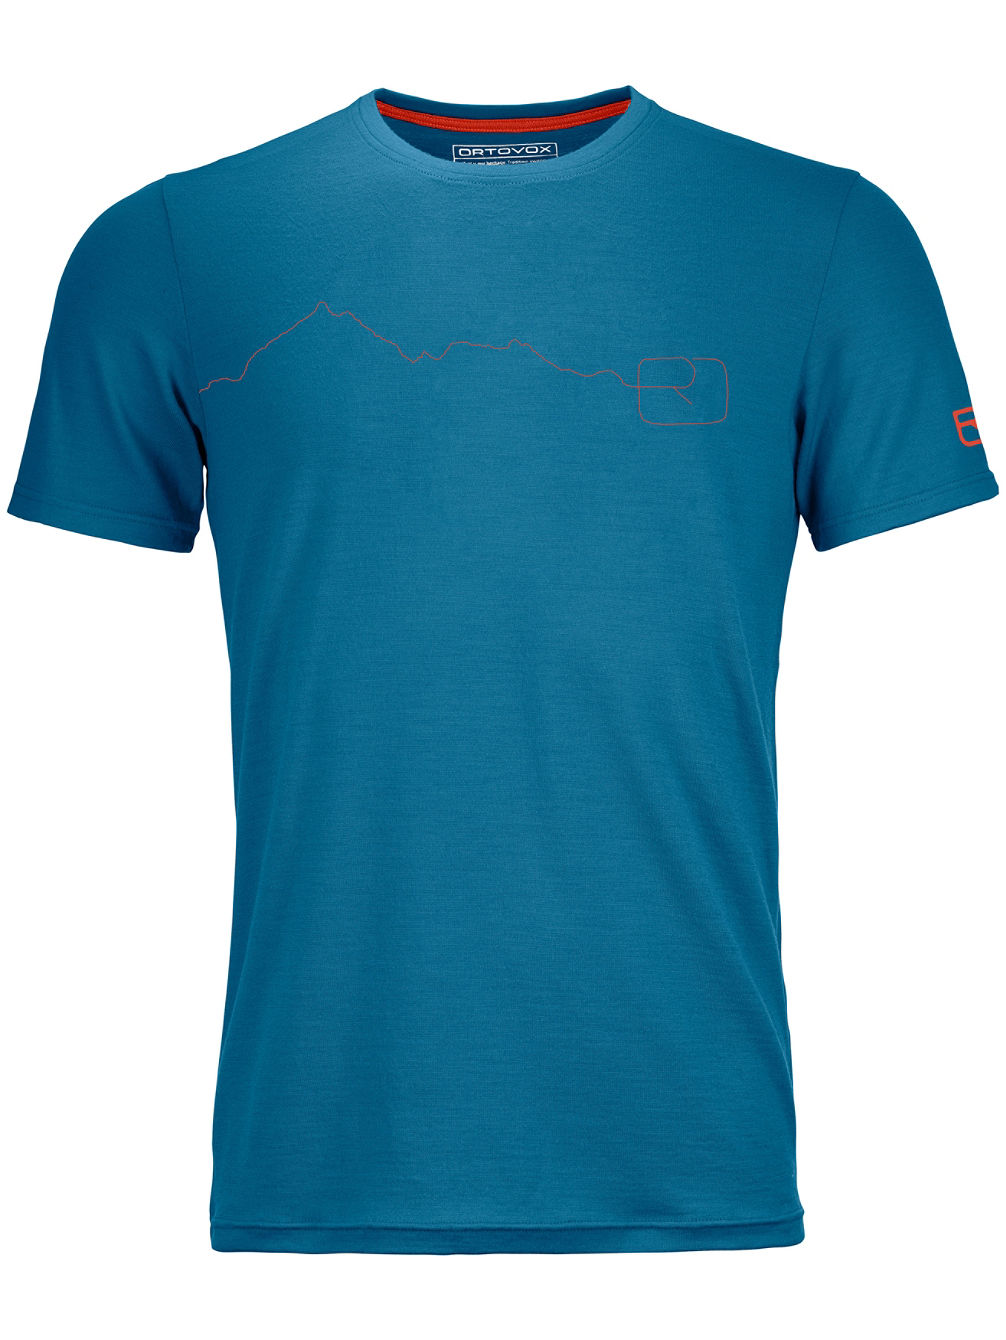 150 Cool Mountain Camiseta técnica